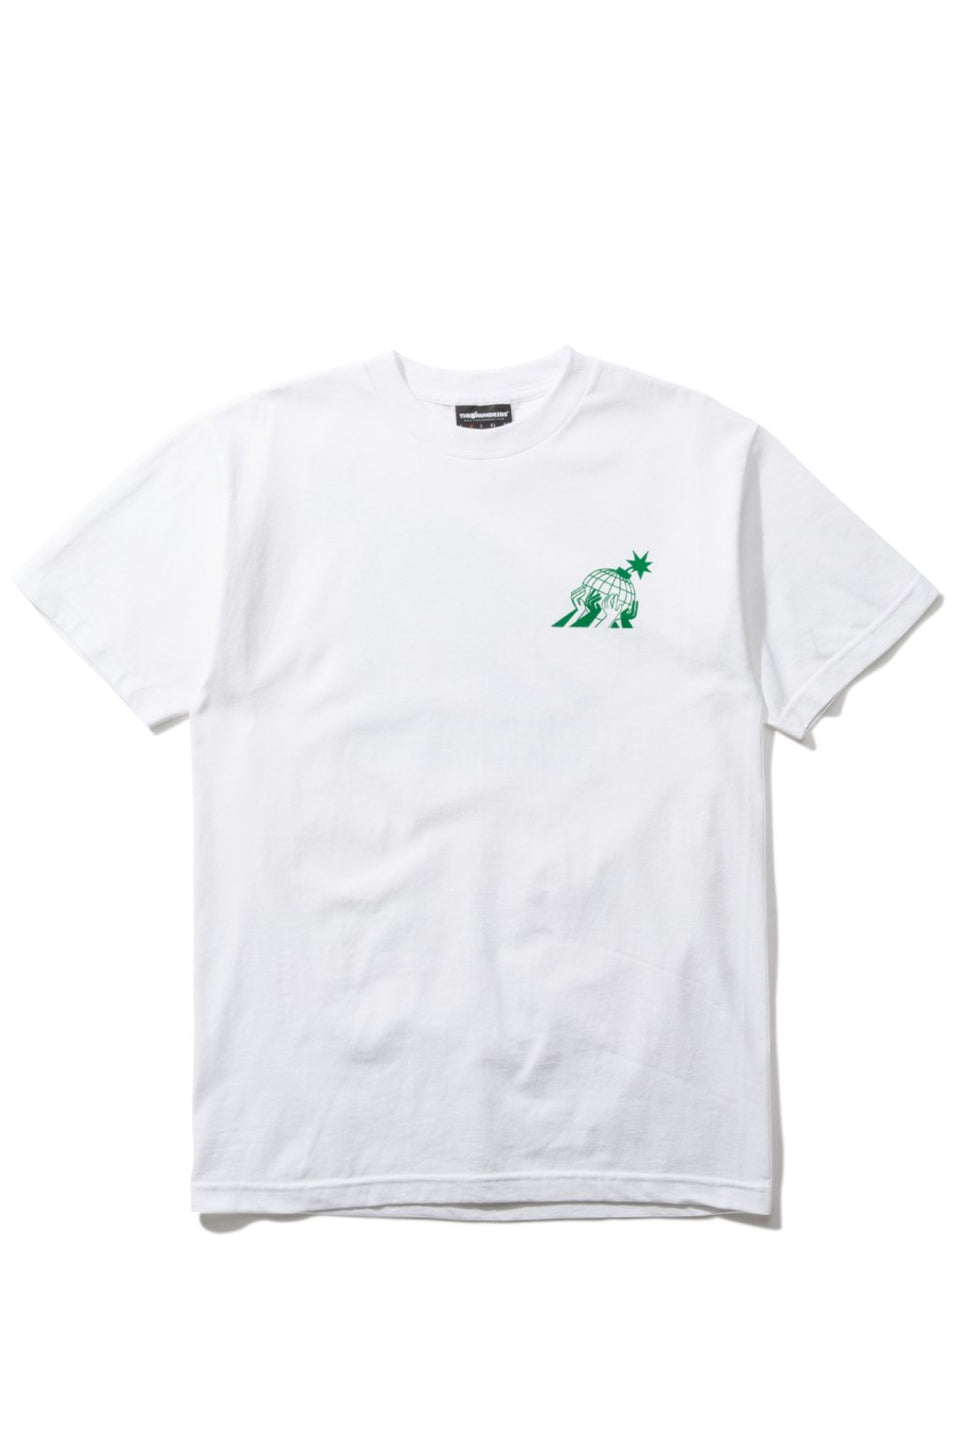 Worlds T-shirt-TOPS-The Hundreds UK